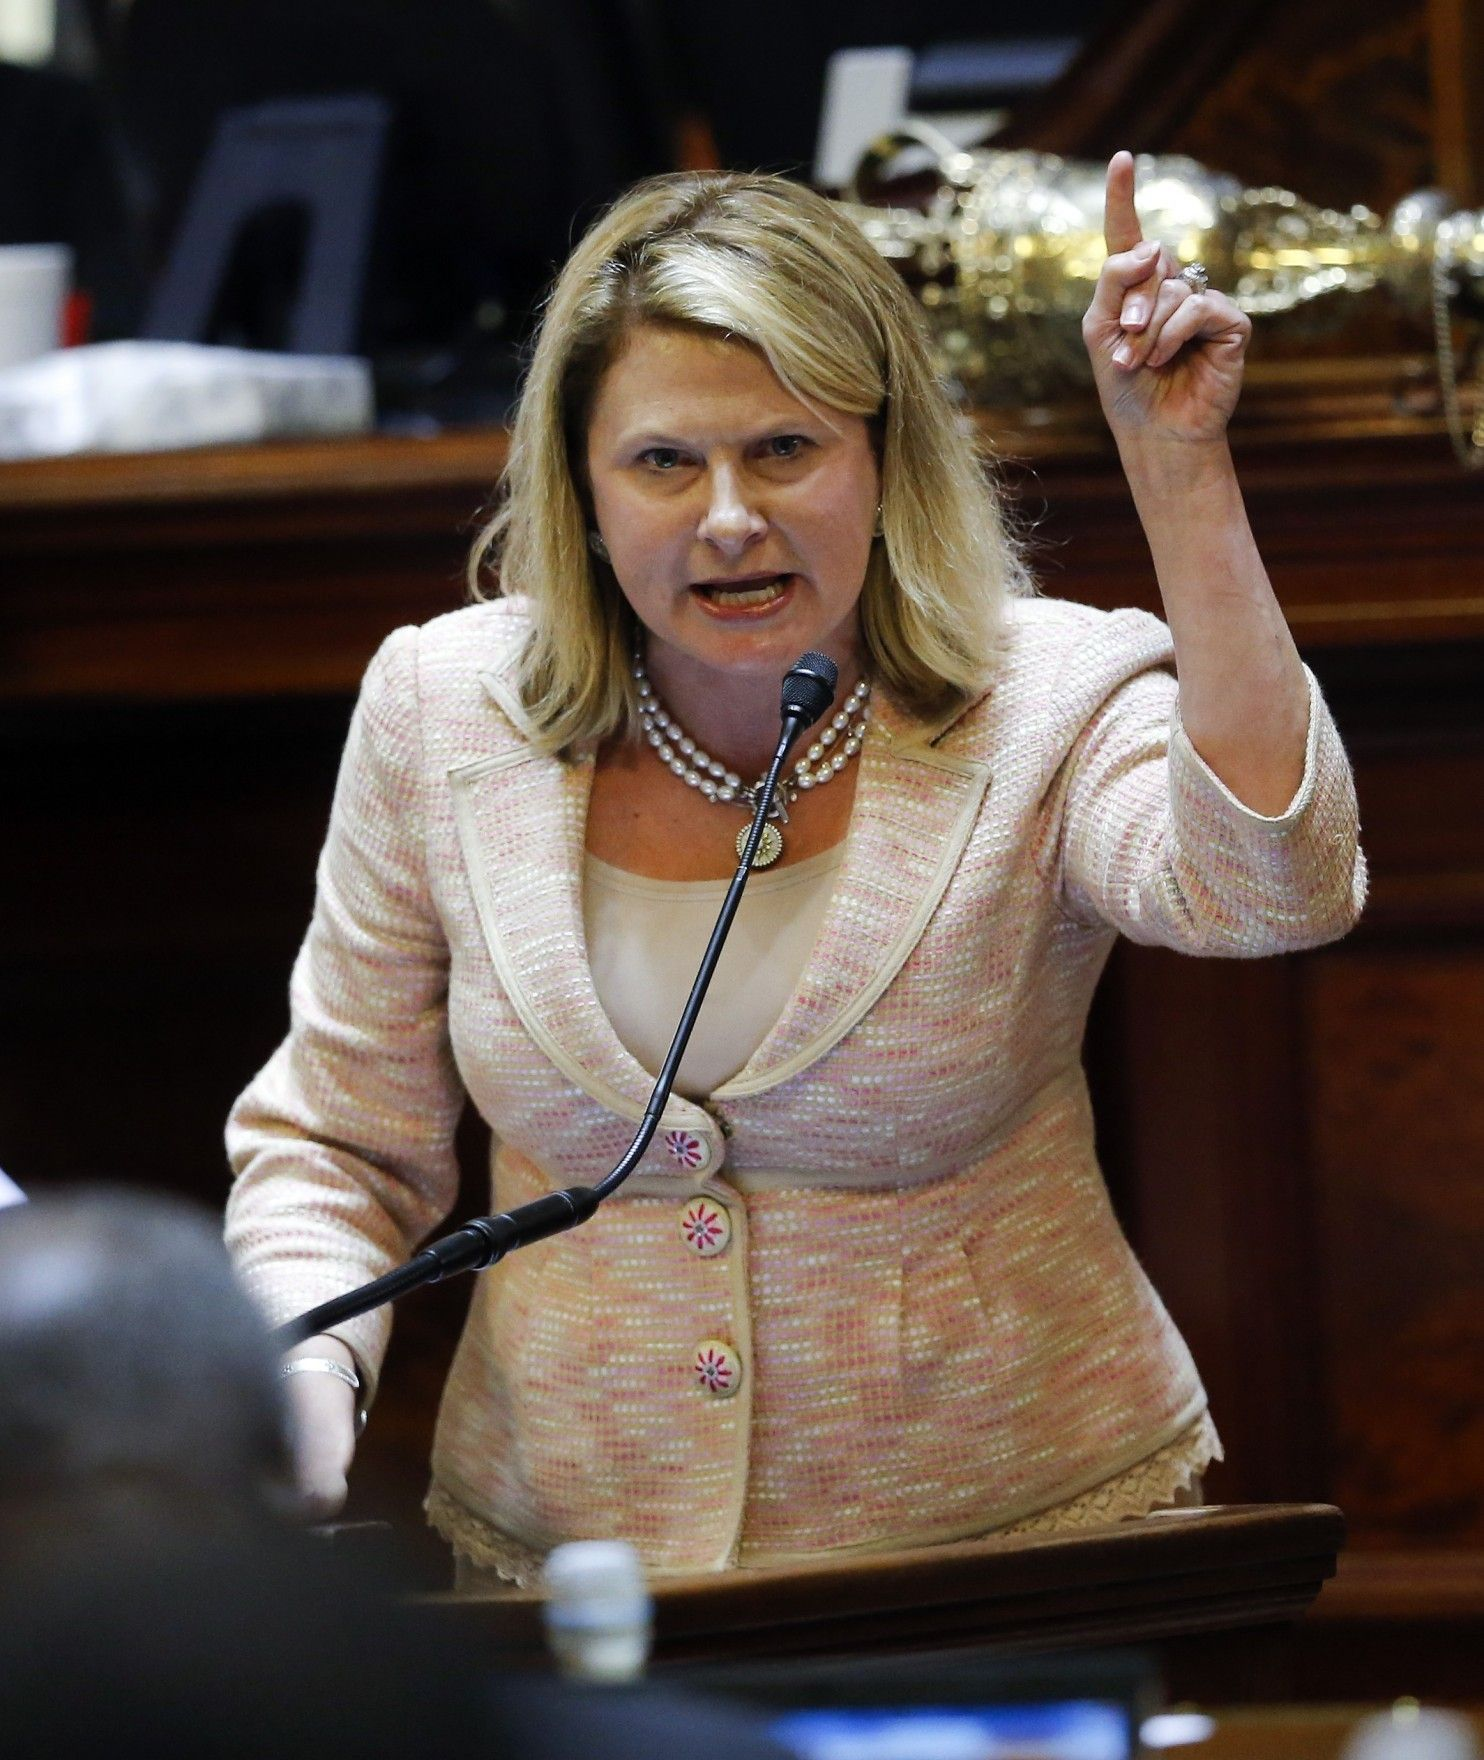 Jenny Horne: ¿Cómo un descendiente de la presidenta de la Confederación ayudó a vencer su bandera - The Washington Post